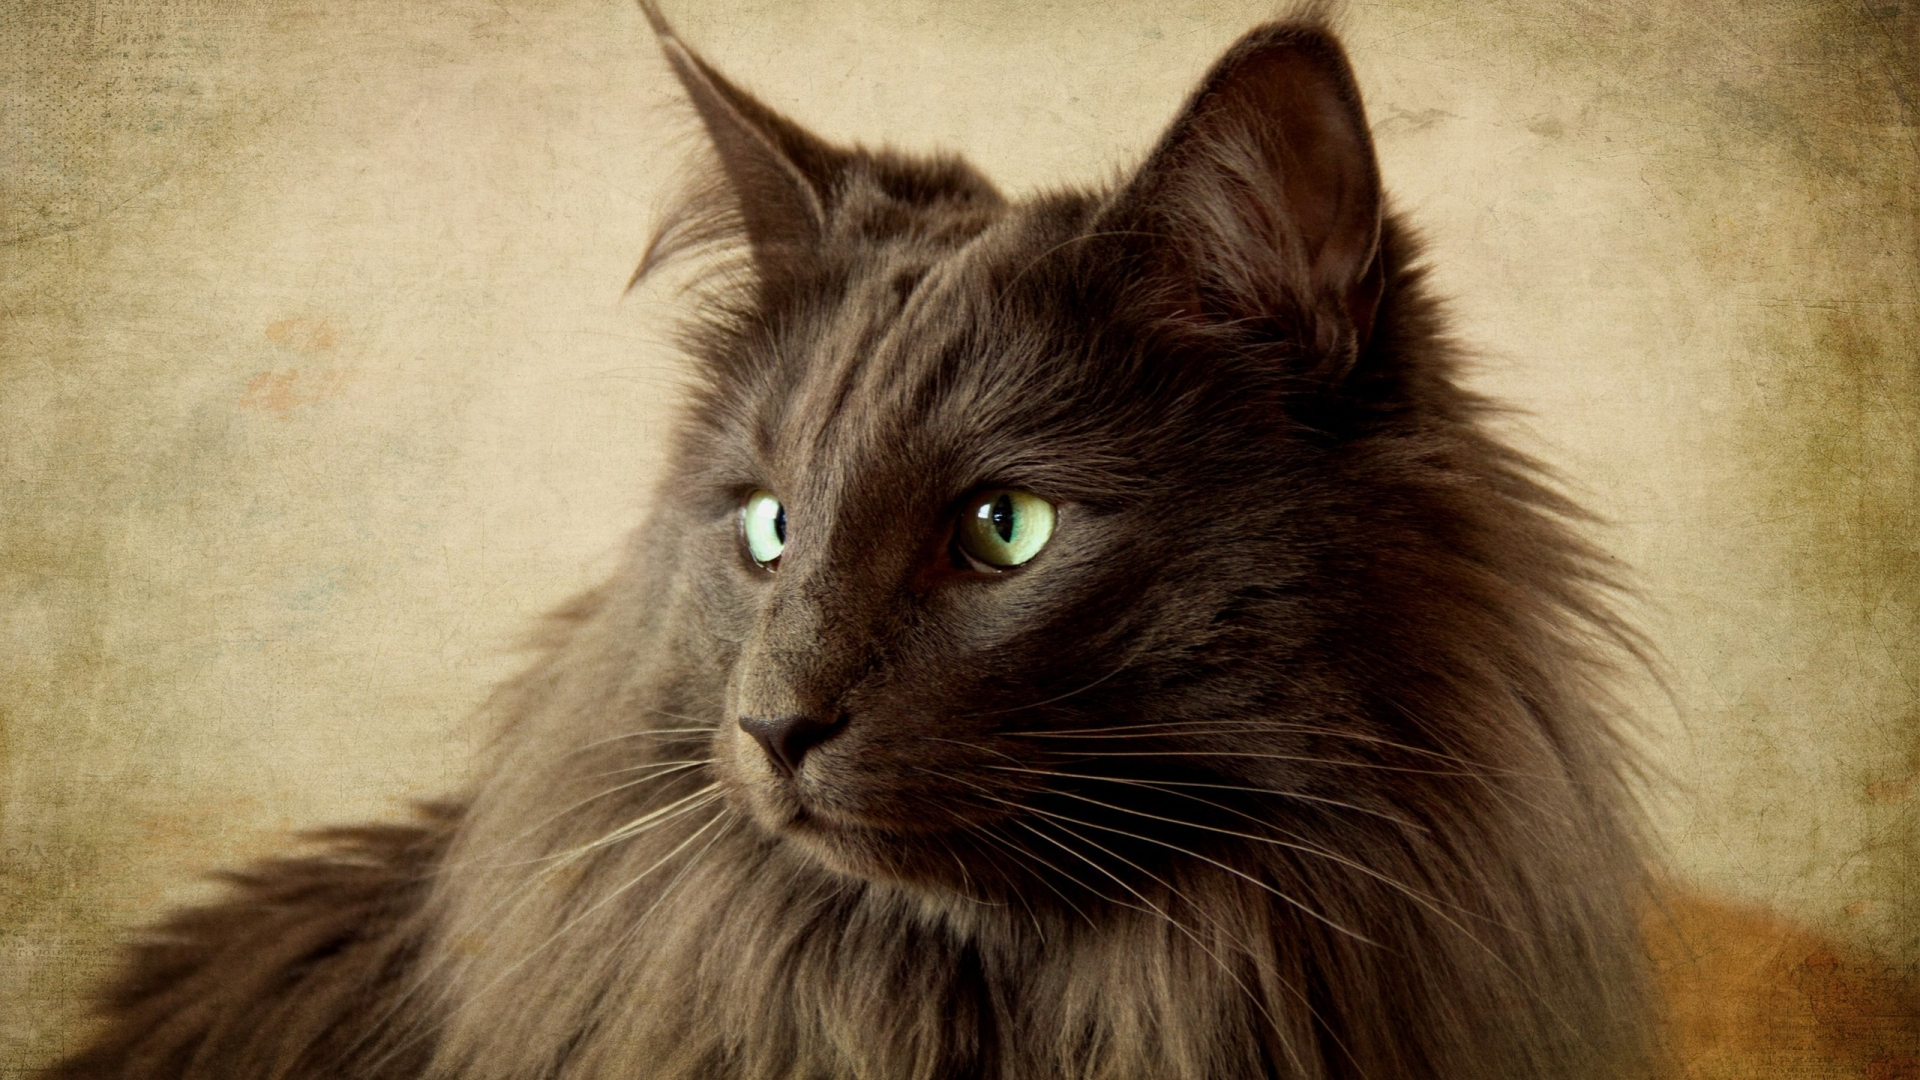 Portrait of Black Nebelung Cat for 1920 x 1080 HDTV 1080p resolution